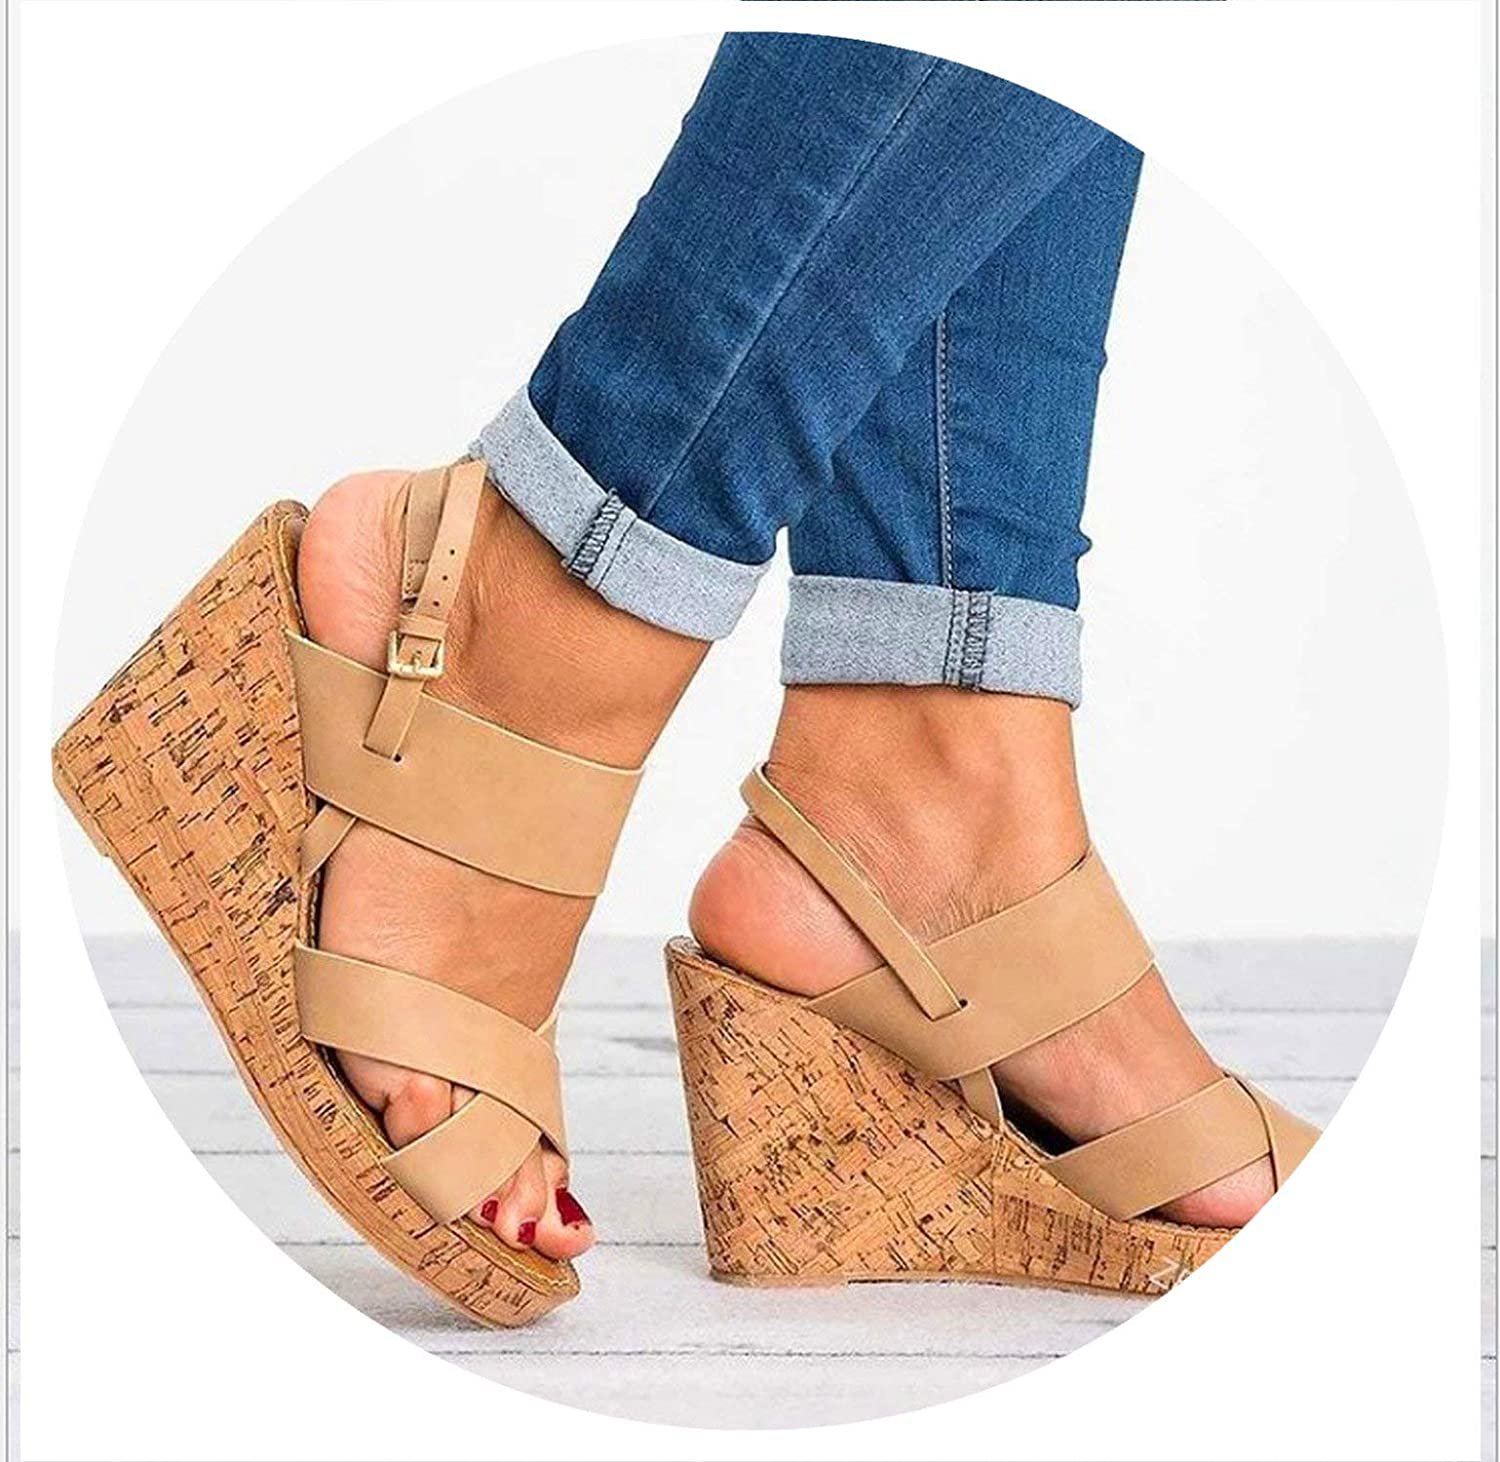 Our ideas Designer Platform Sandal 2019 Front Rear Strap Open Toe Women Sandals Designer shoes